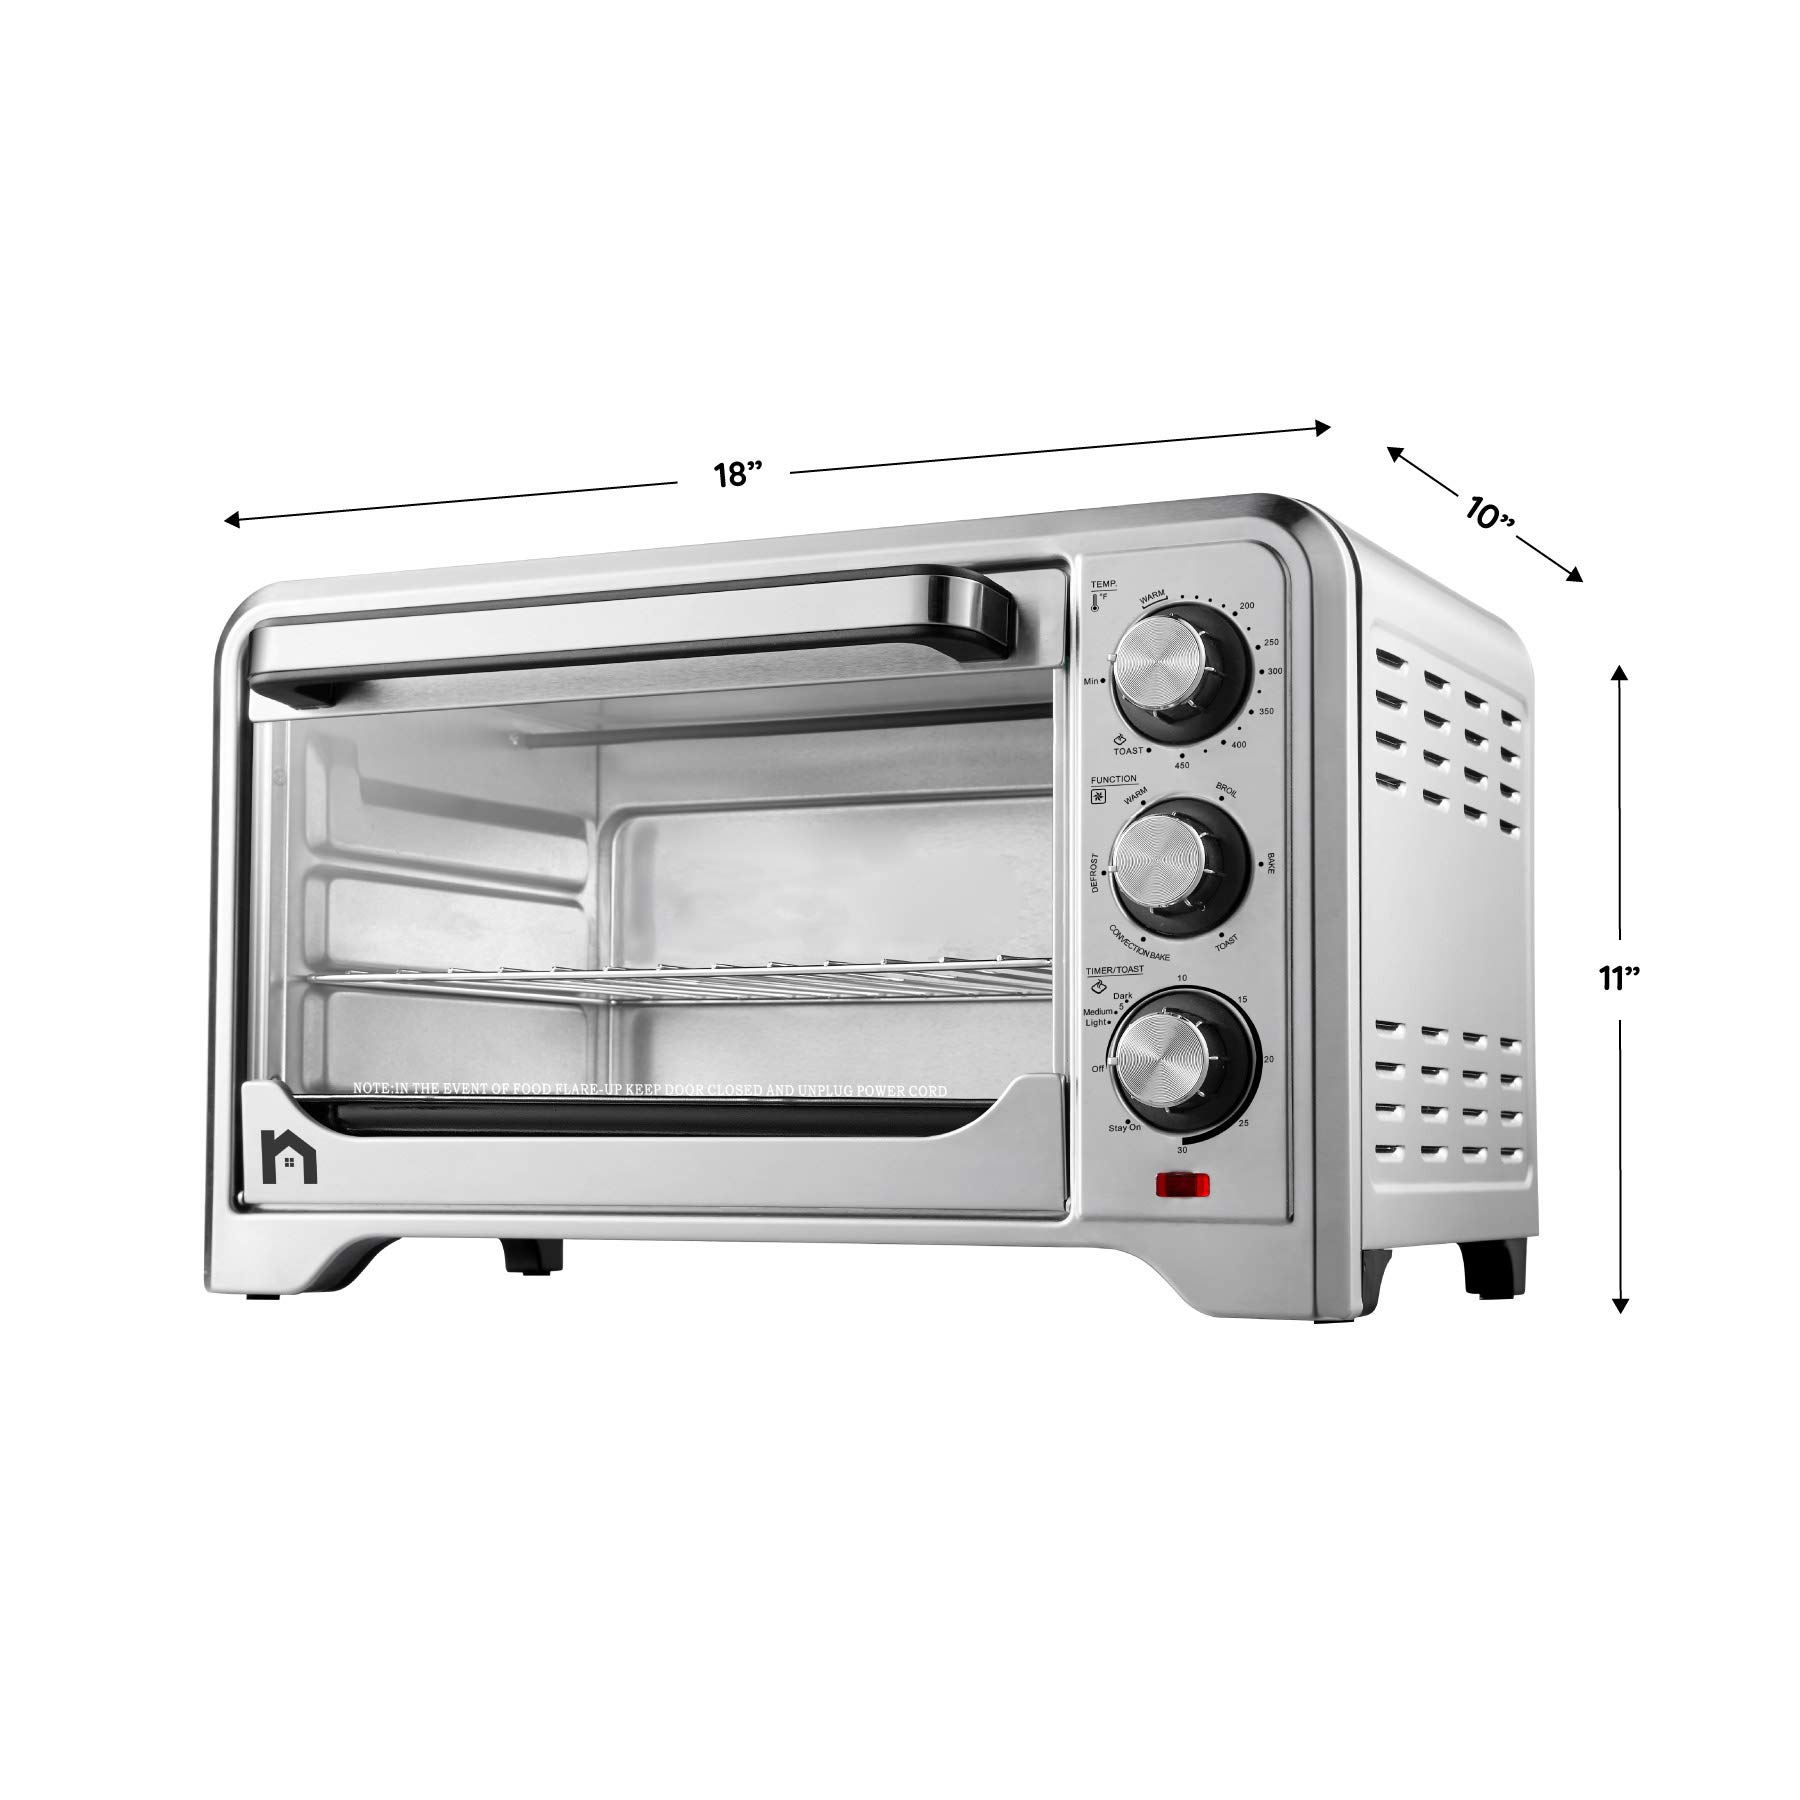 New House Kitchen Stainless Steel Toaster Countertop Convection Oven w/Multiple Temperature Control, X-Large 6 Slice, 6 Cooking Functions Include Bake, Broil, Keep Warm by New House Kitchen (Image #5)